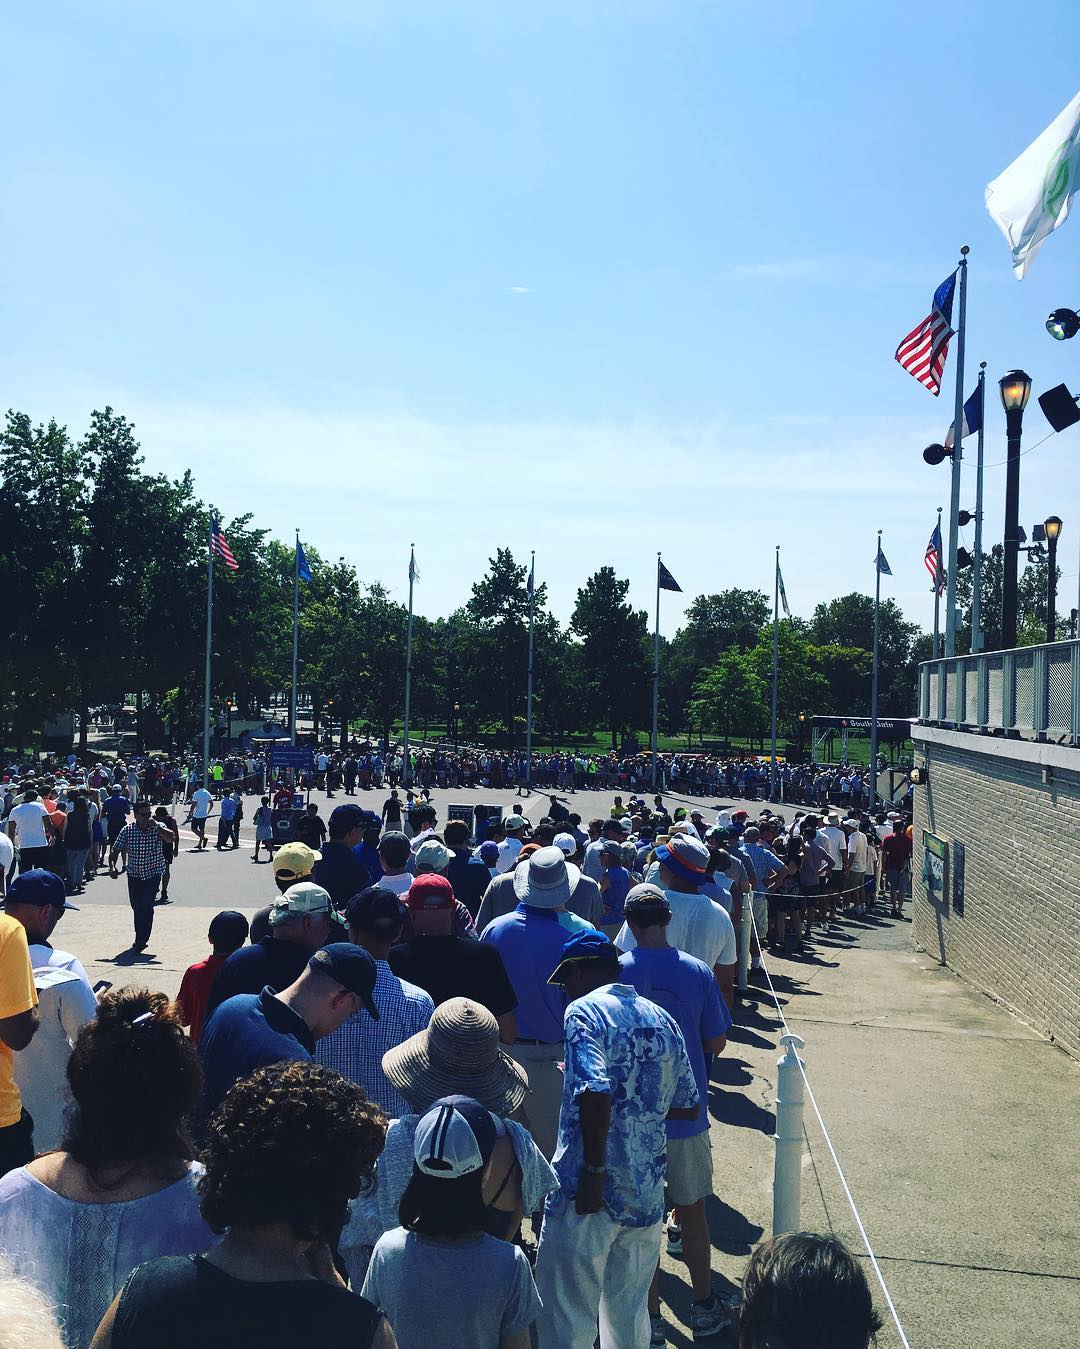 The line into the US Open was horrific the day I attended. I waited 30 minutes in the hot sun to pass the check in gates.